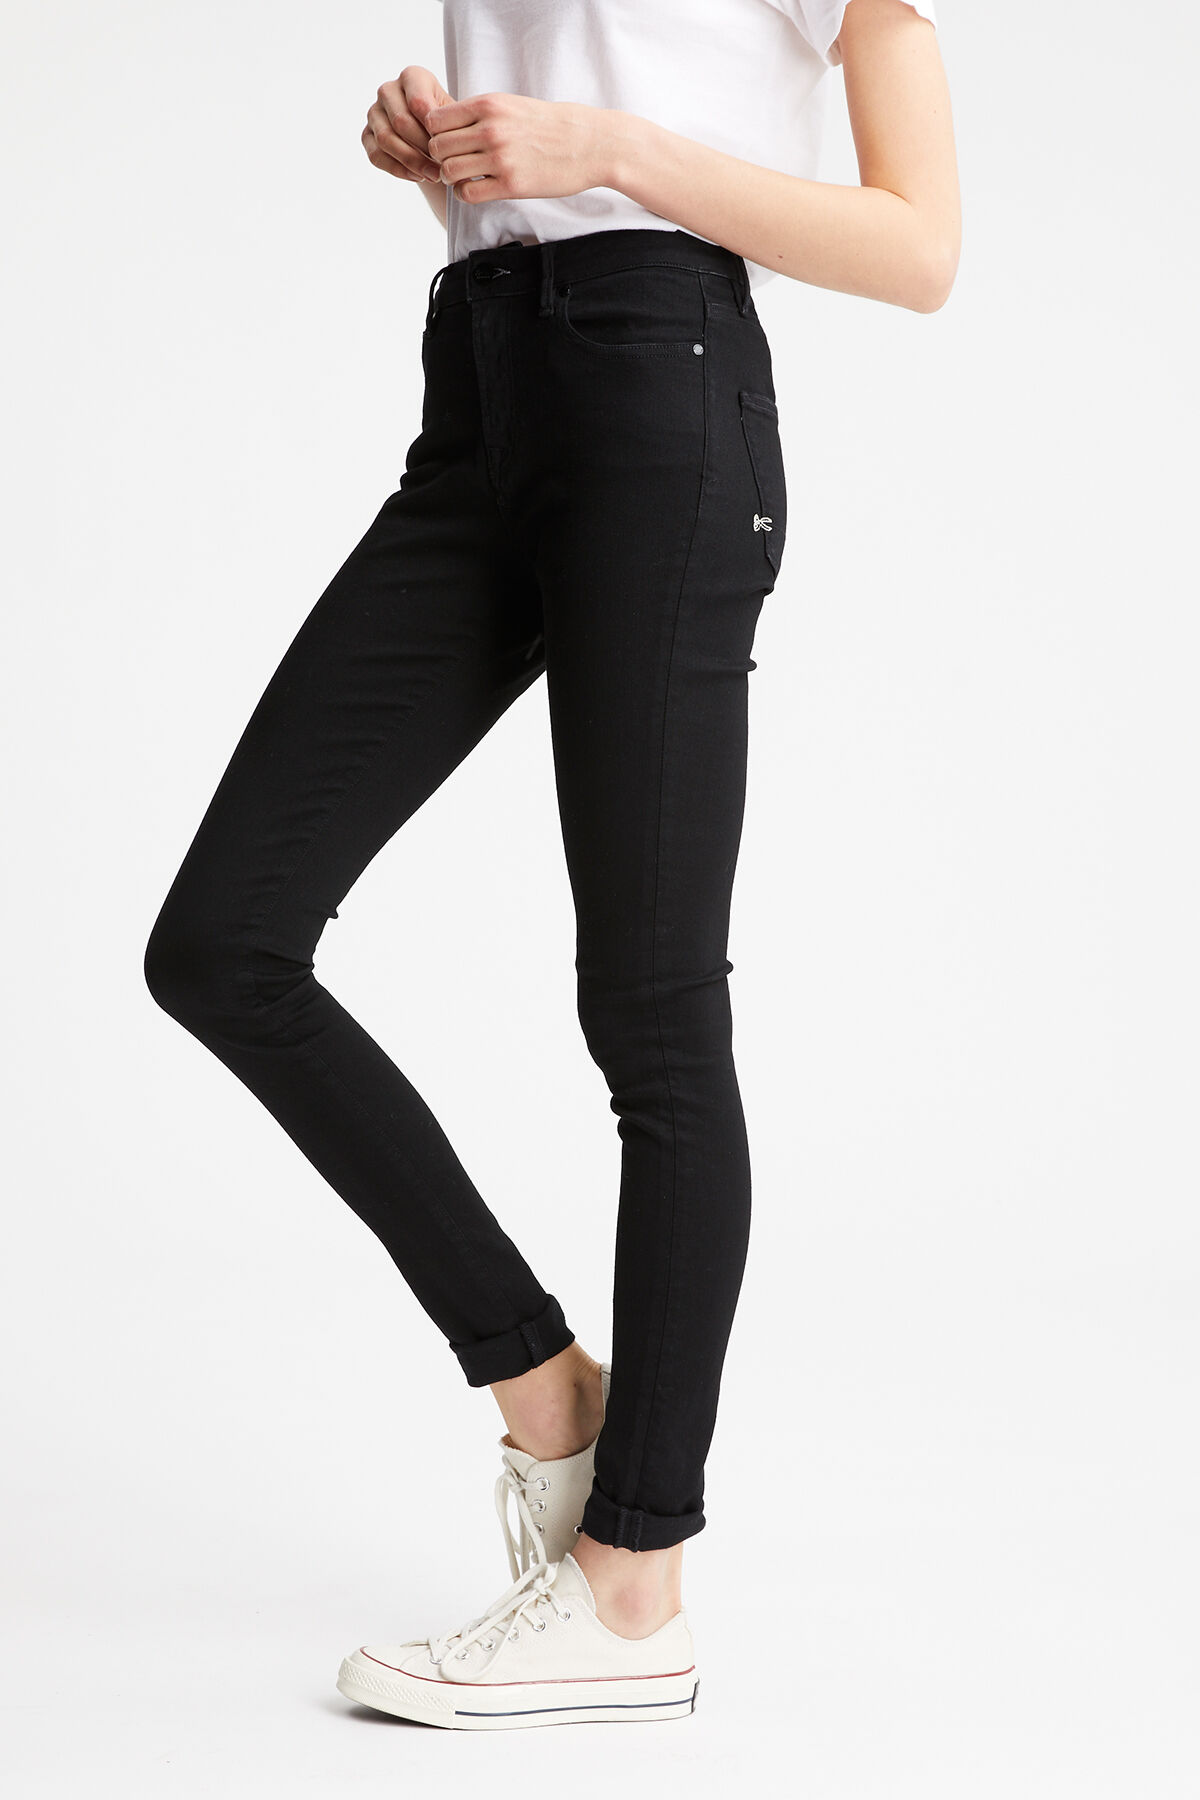 NEEDLE Black Sustainable Denim - High-Rise, Skinny Fit